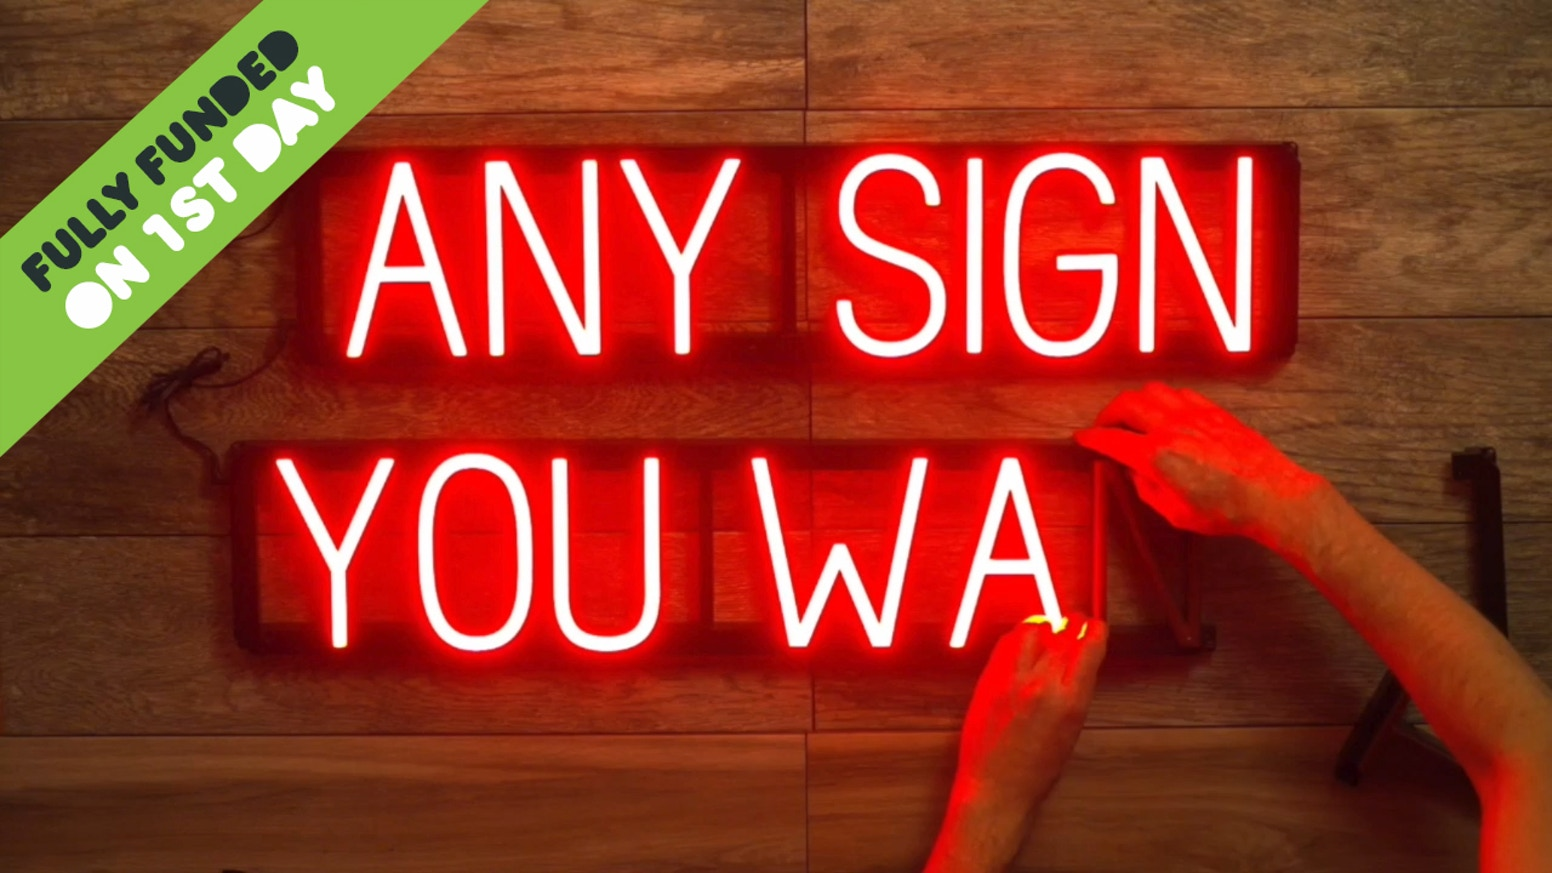 SpellBrite Colors: Click-Together LED Signs in 3 New Colors